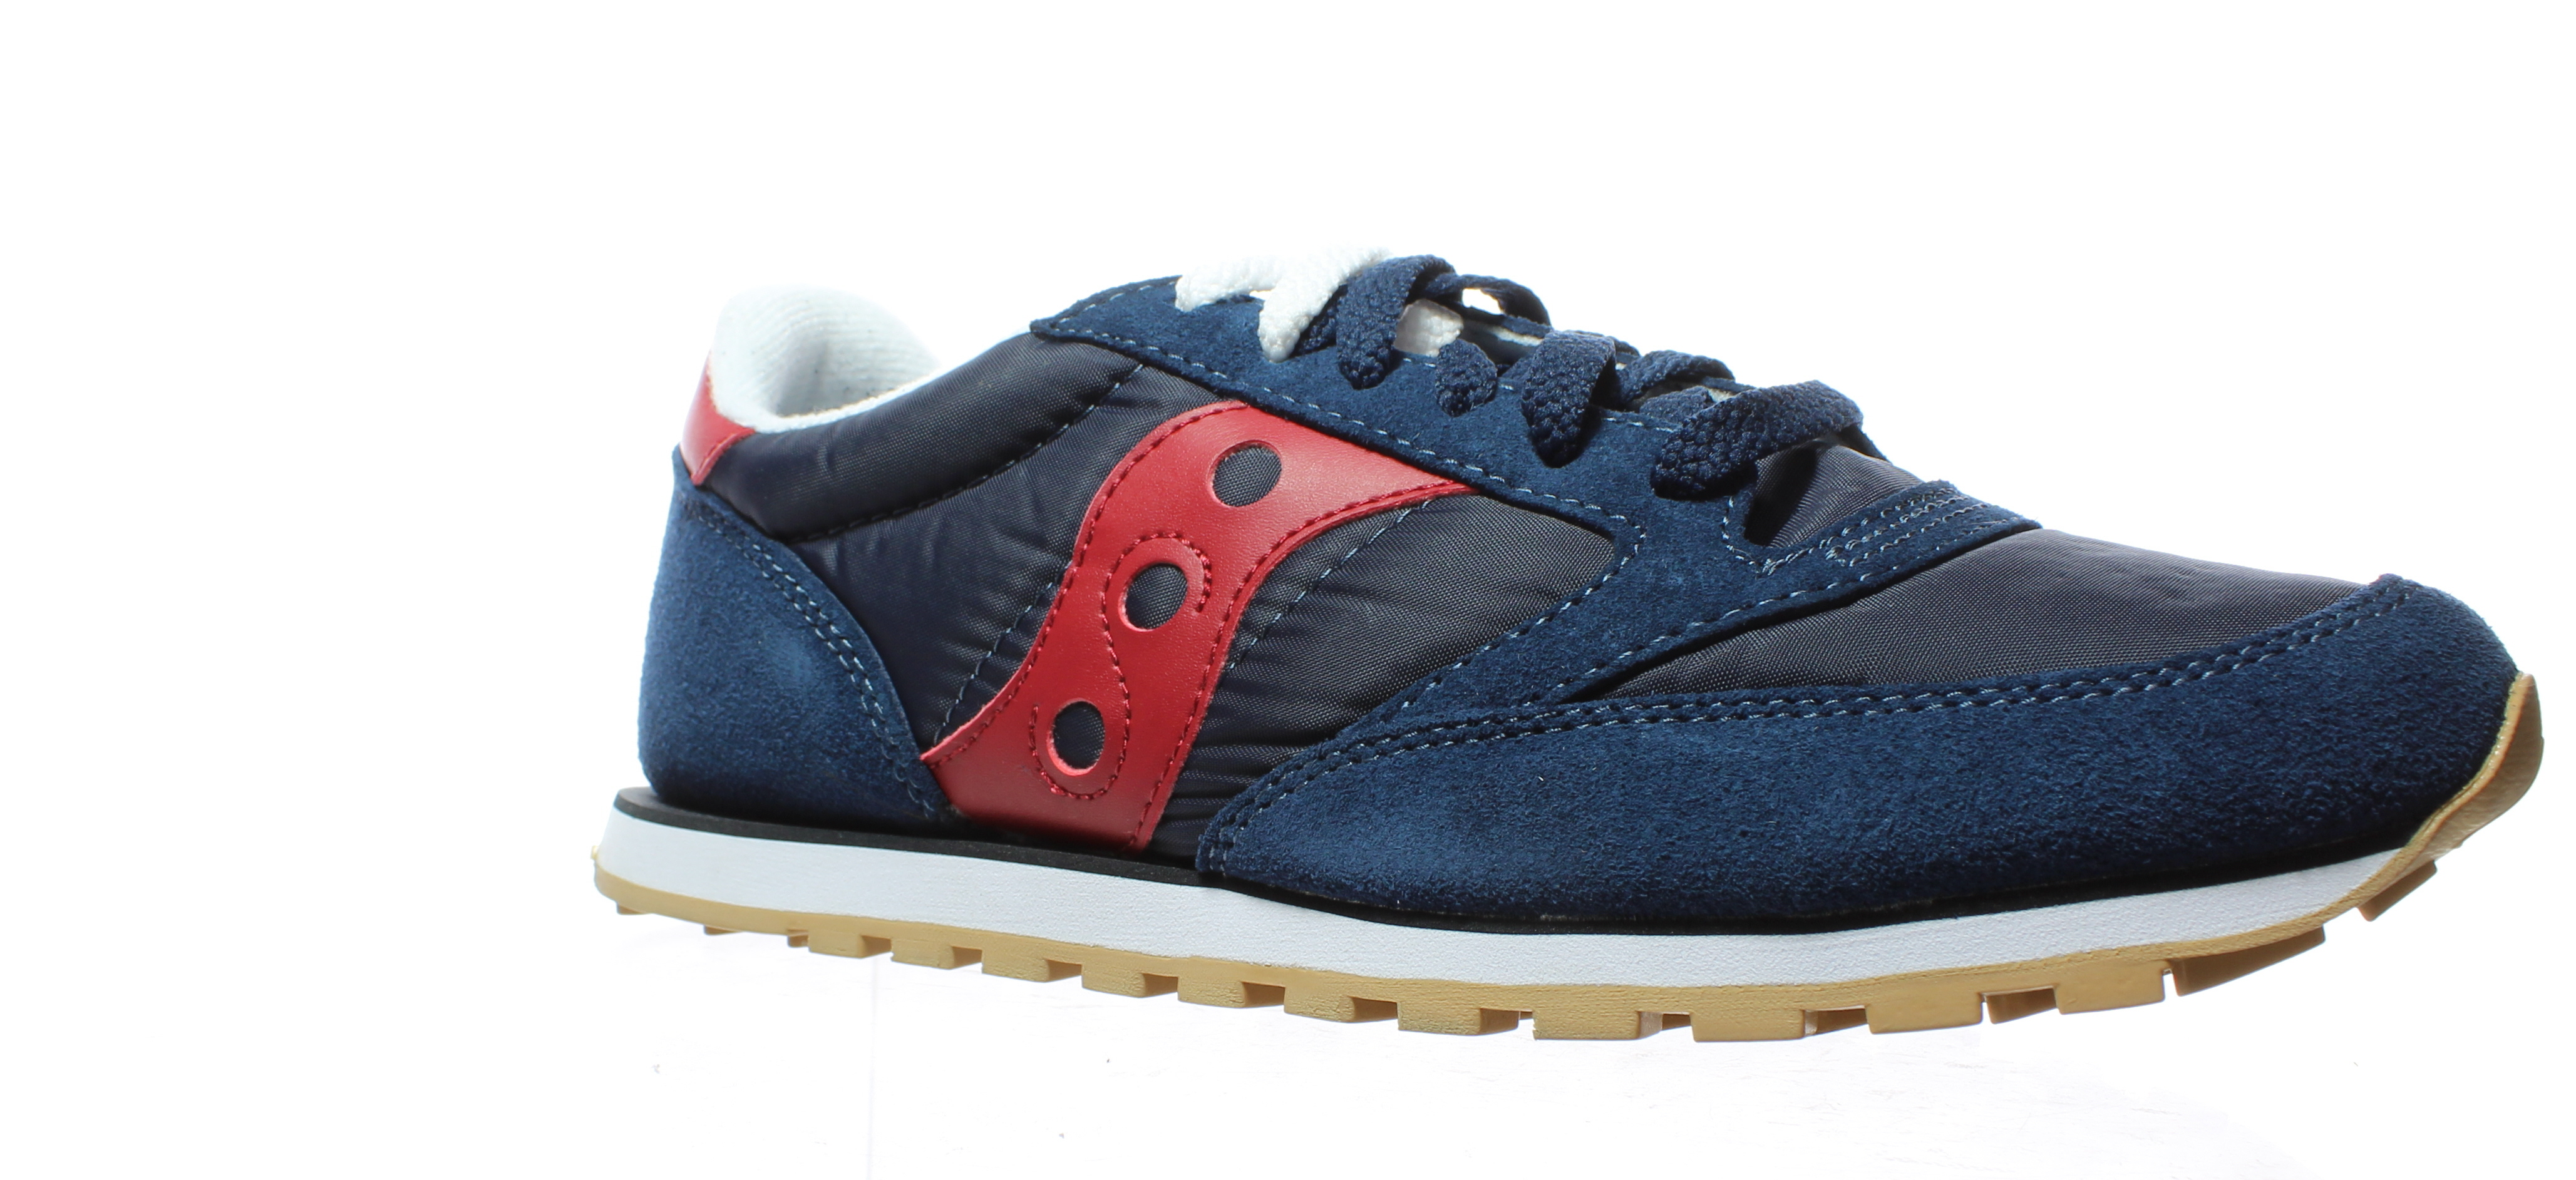 34a7ccc8ca Details about Saucony Mens Jazz Low Pro Navy   Red Running Shoes Size 9.5  (194481)